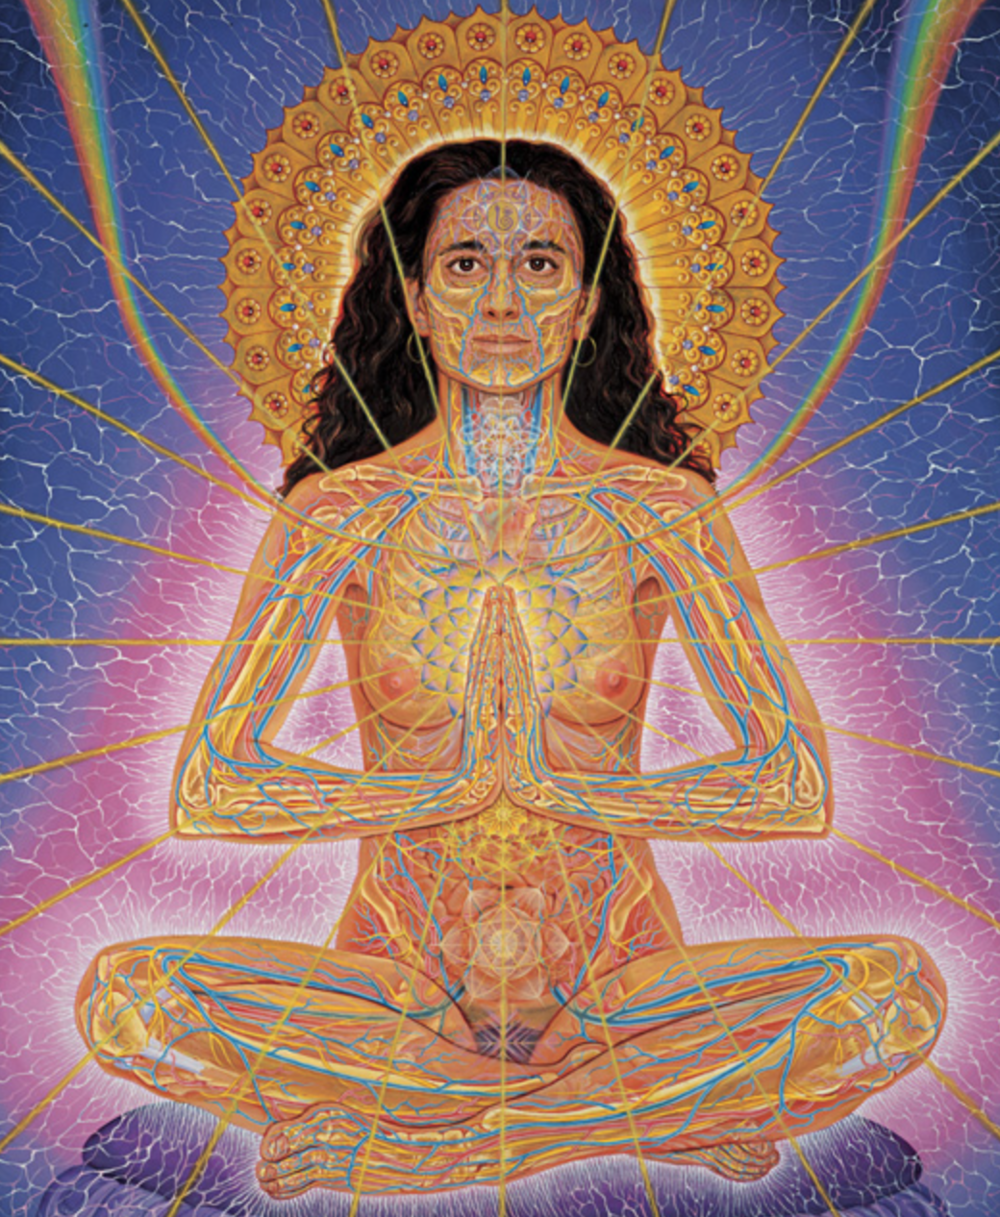 Namaste (credit: Alex Grey)